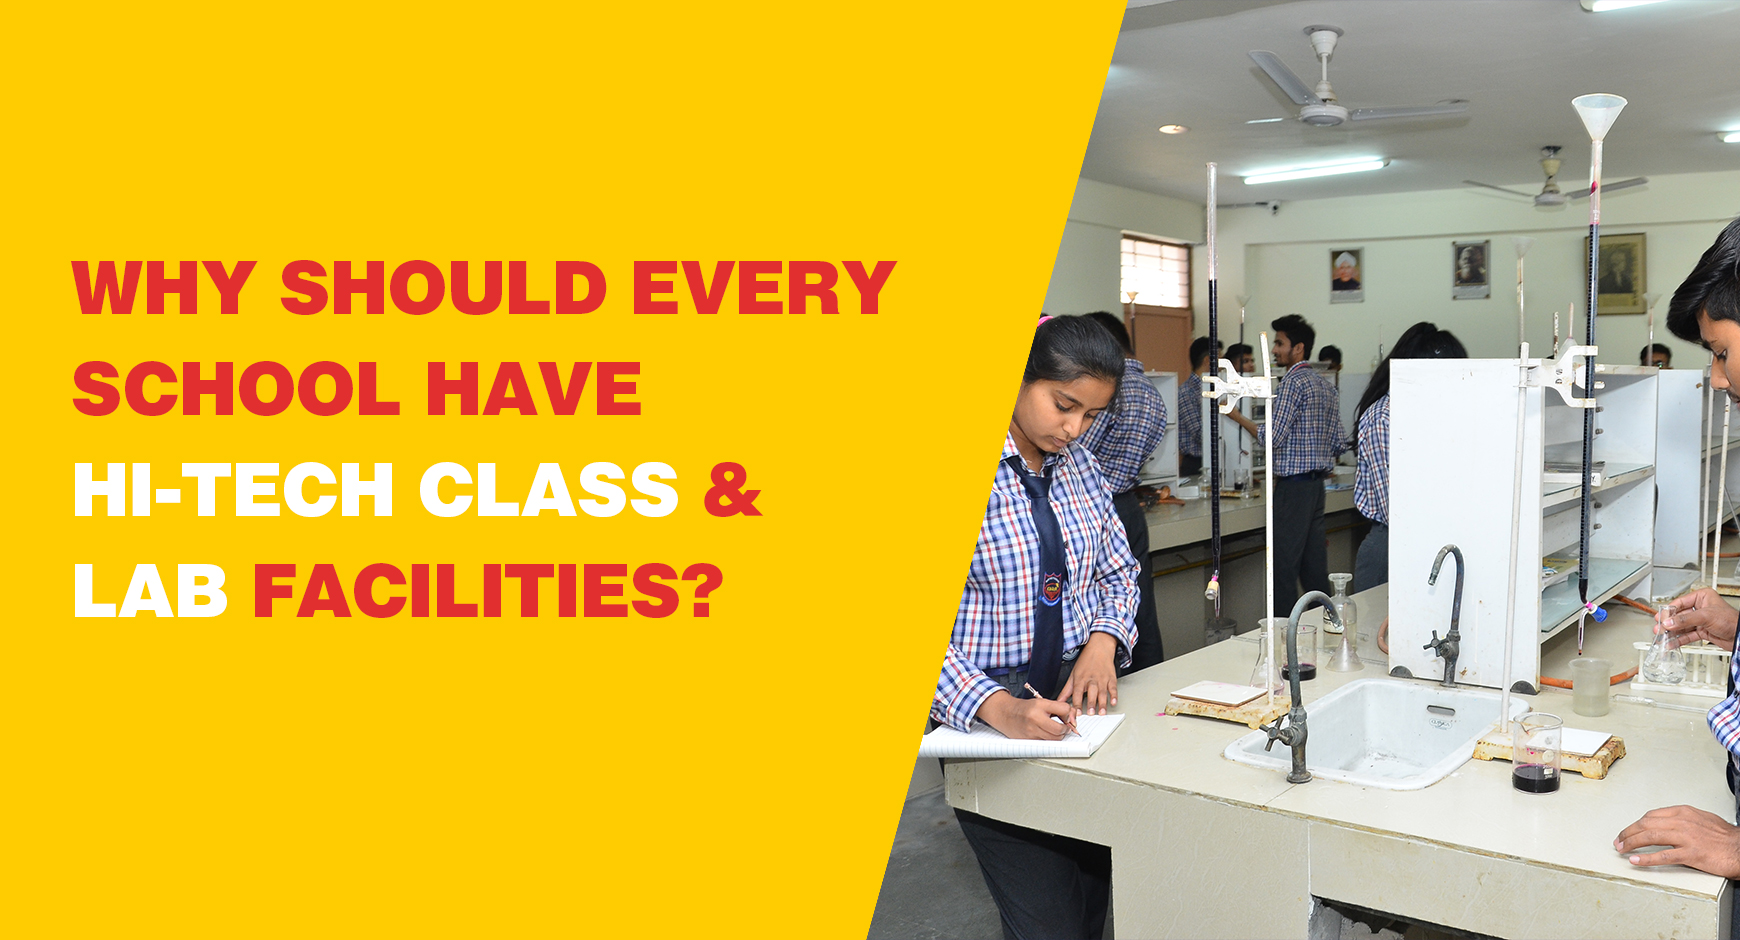 Why should every school have hi-tech Class & Lab facilities?